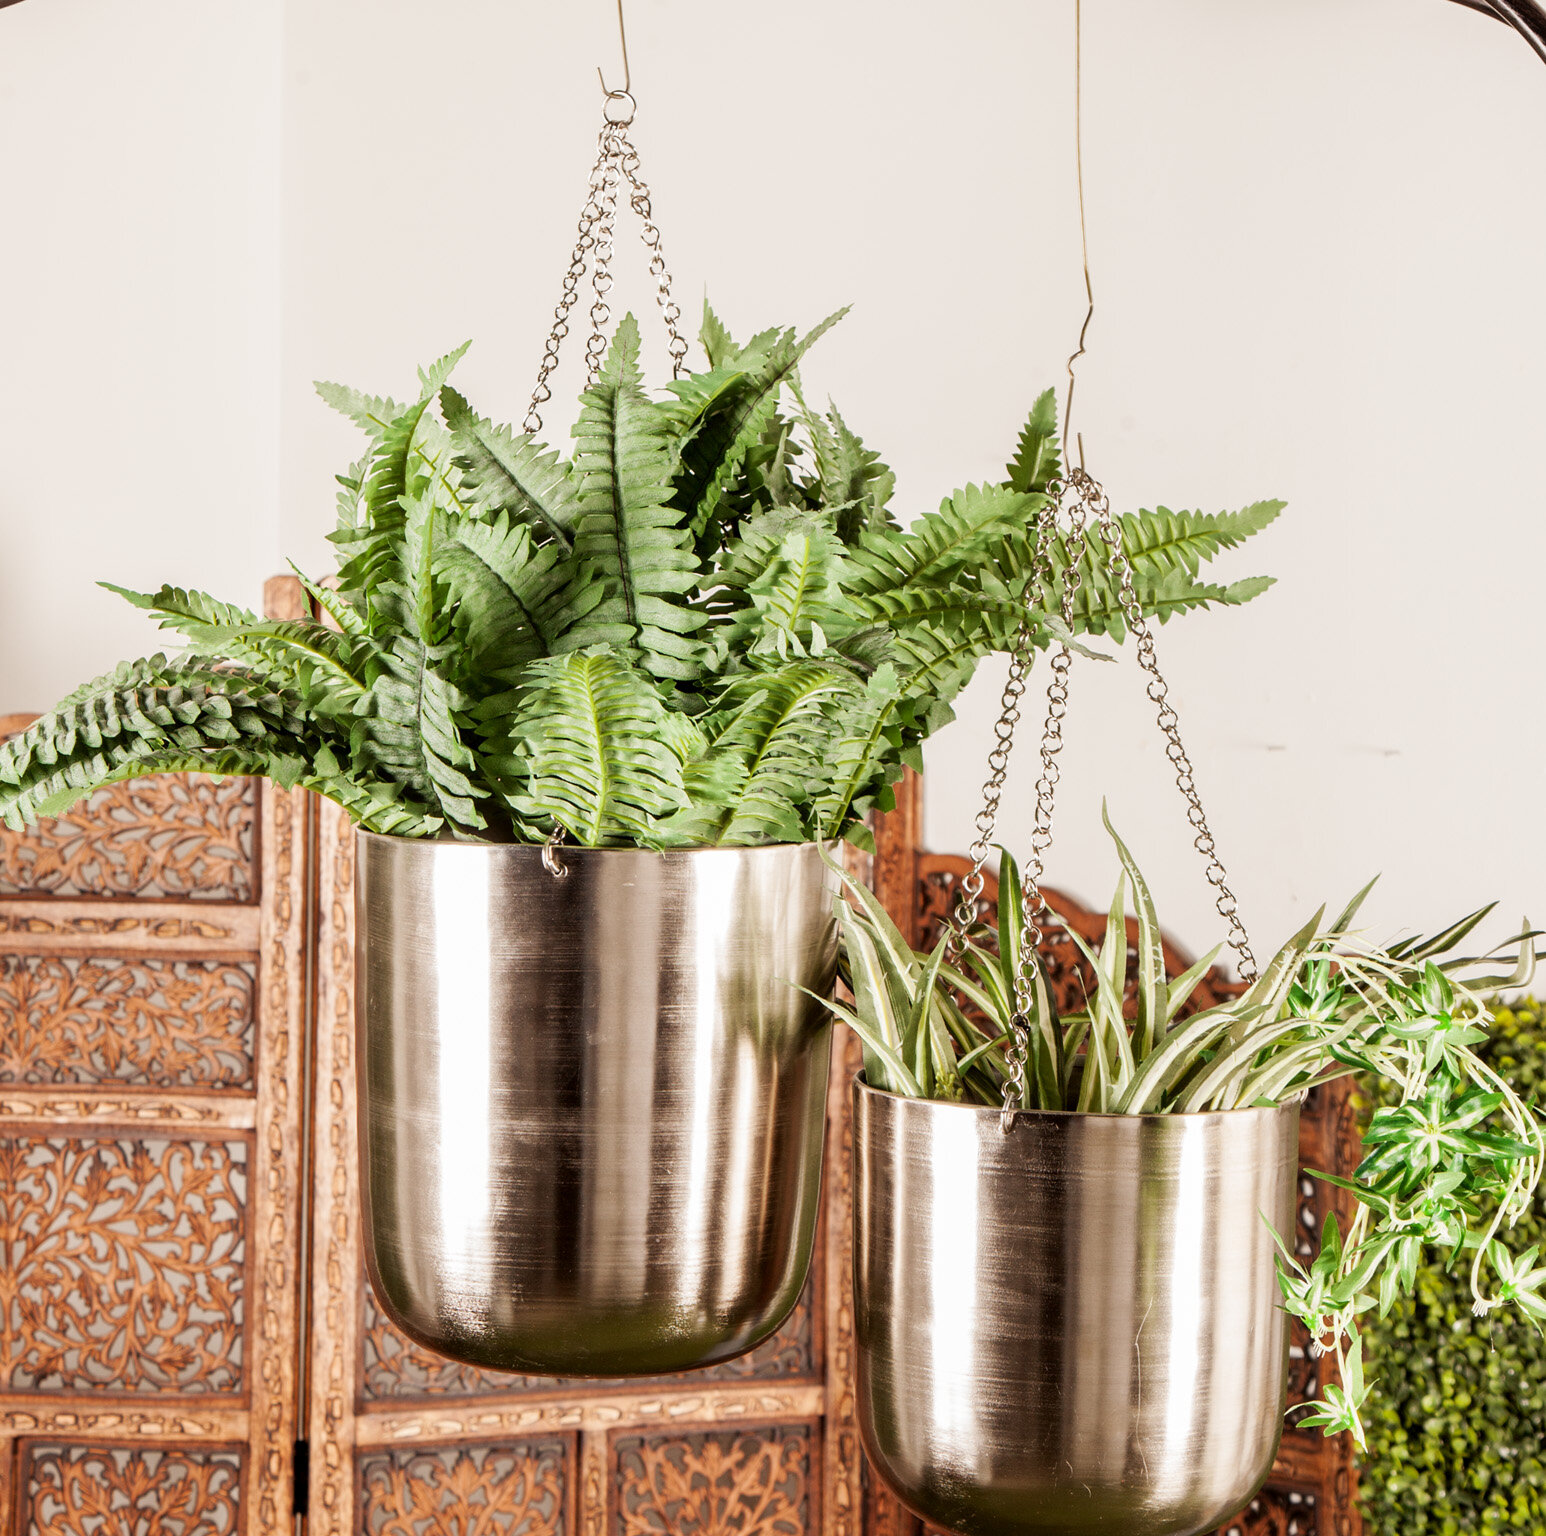 Cosmoliving By Cosmopolitan Modern 2 Piece Metal Hanging Planter Set Reviews Wayfair